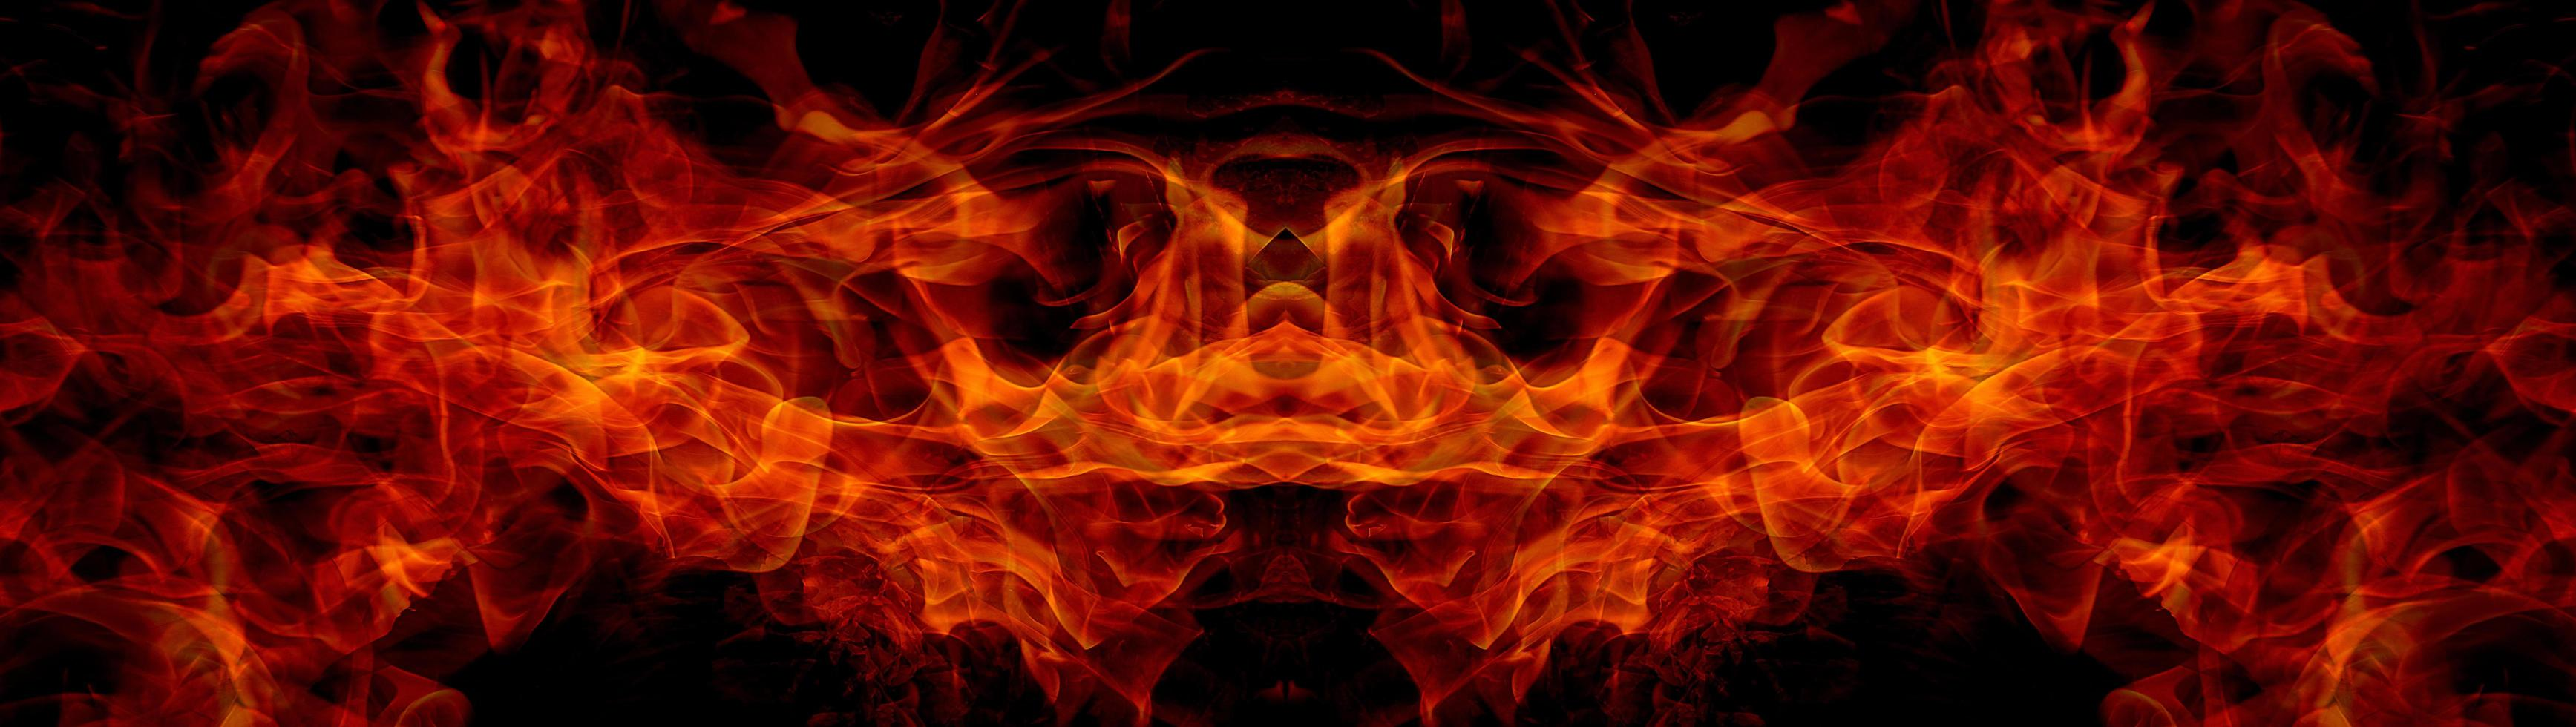 Fire flames on abstract art black background, burning red hot sparks rise, fiery orange glowing flying particles photo